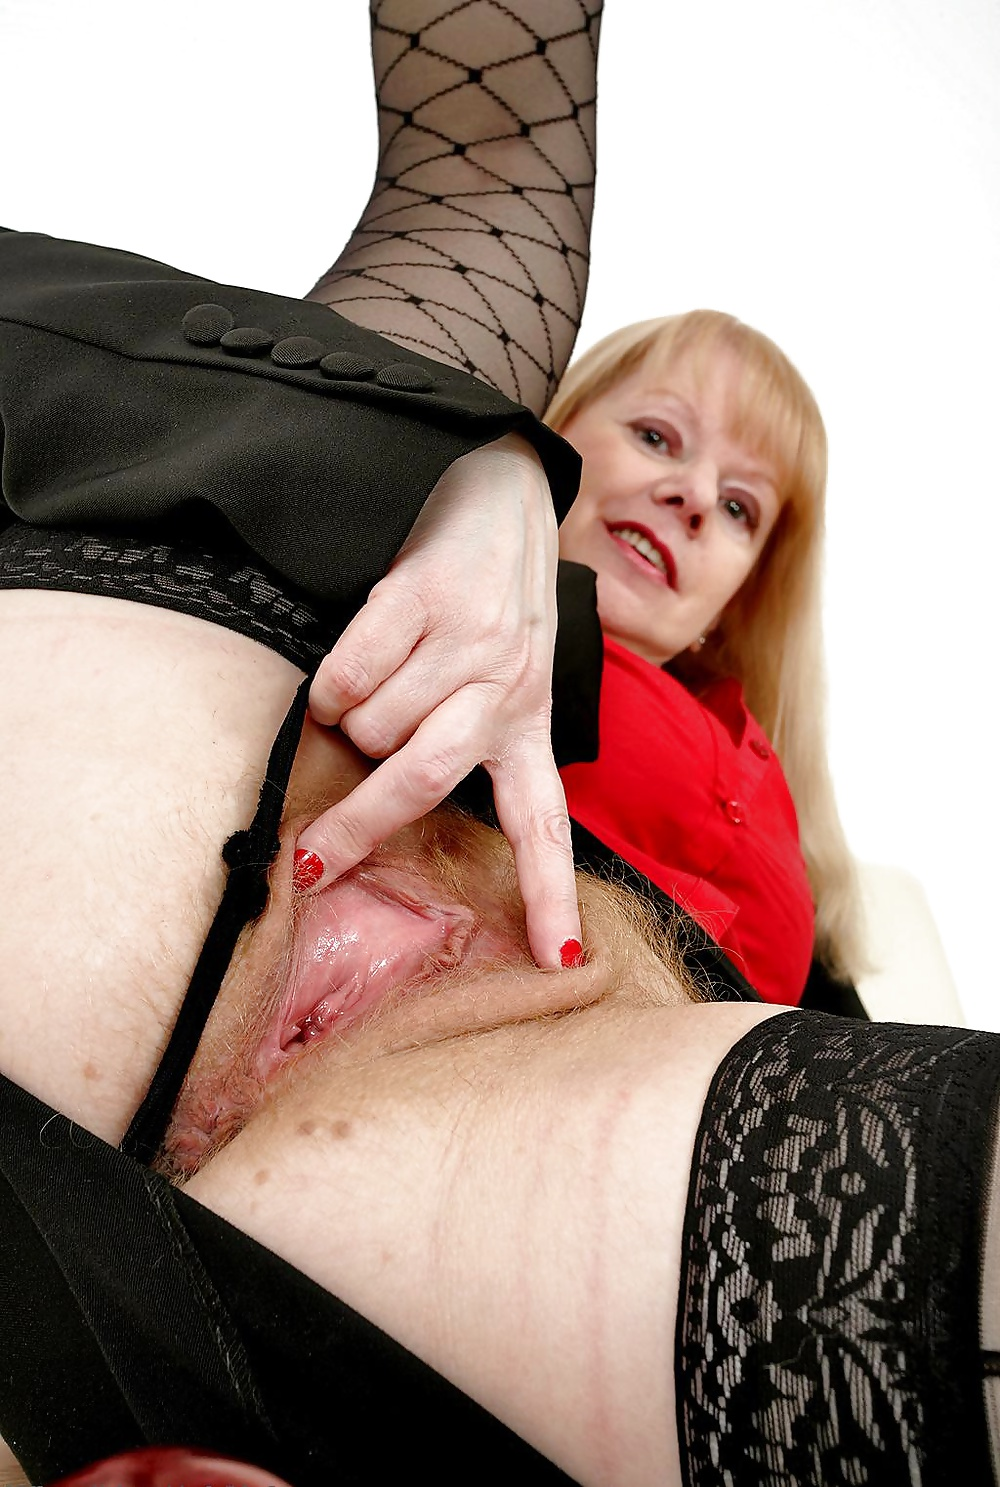 See And Save As Mature Amanda Degas In Black Stockings As -7041